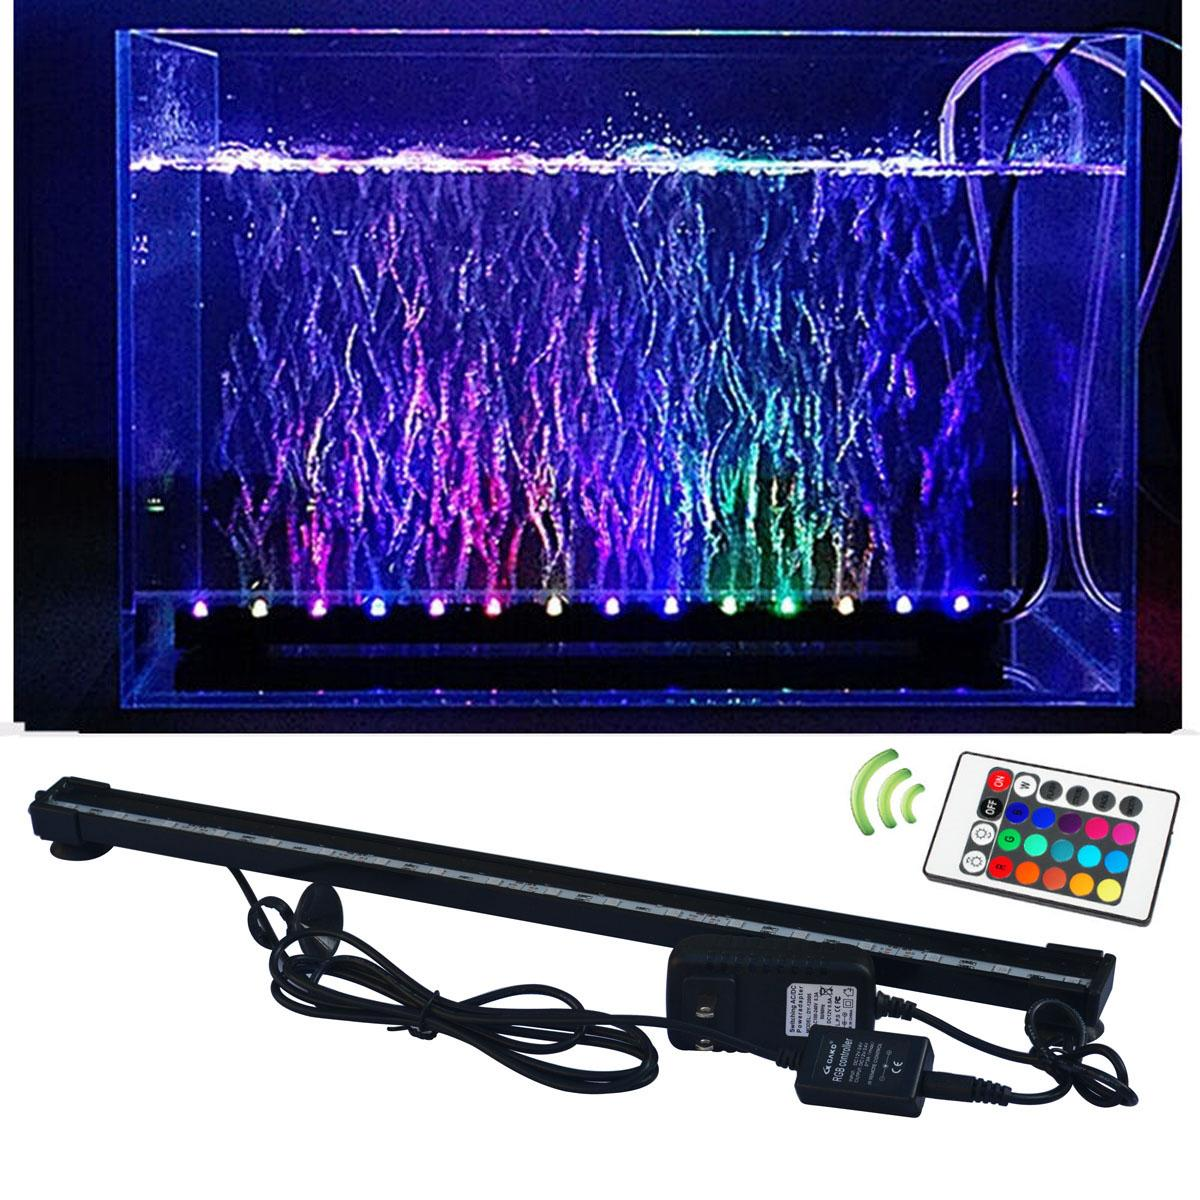 2018 Rgb Fish Tank Plant L& Underwater Bubble Light L& With Remote Controller Aquarium Led Lighting From Ledyourlife $21.71 | Dhgate.Com  sc 1 st  DHgate.com & 2018 Rgb Fish Tank Plant Lamp Underwater Bubble Light Lamp With ... azcodes.com